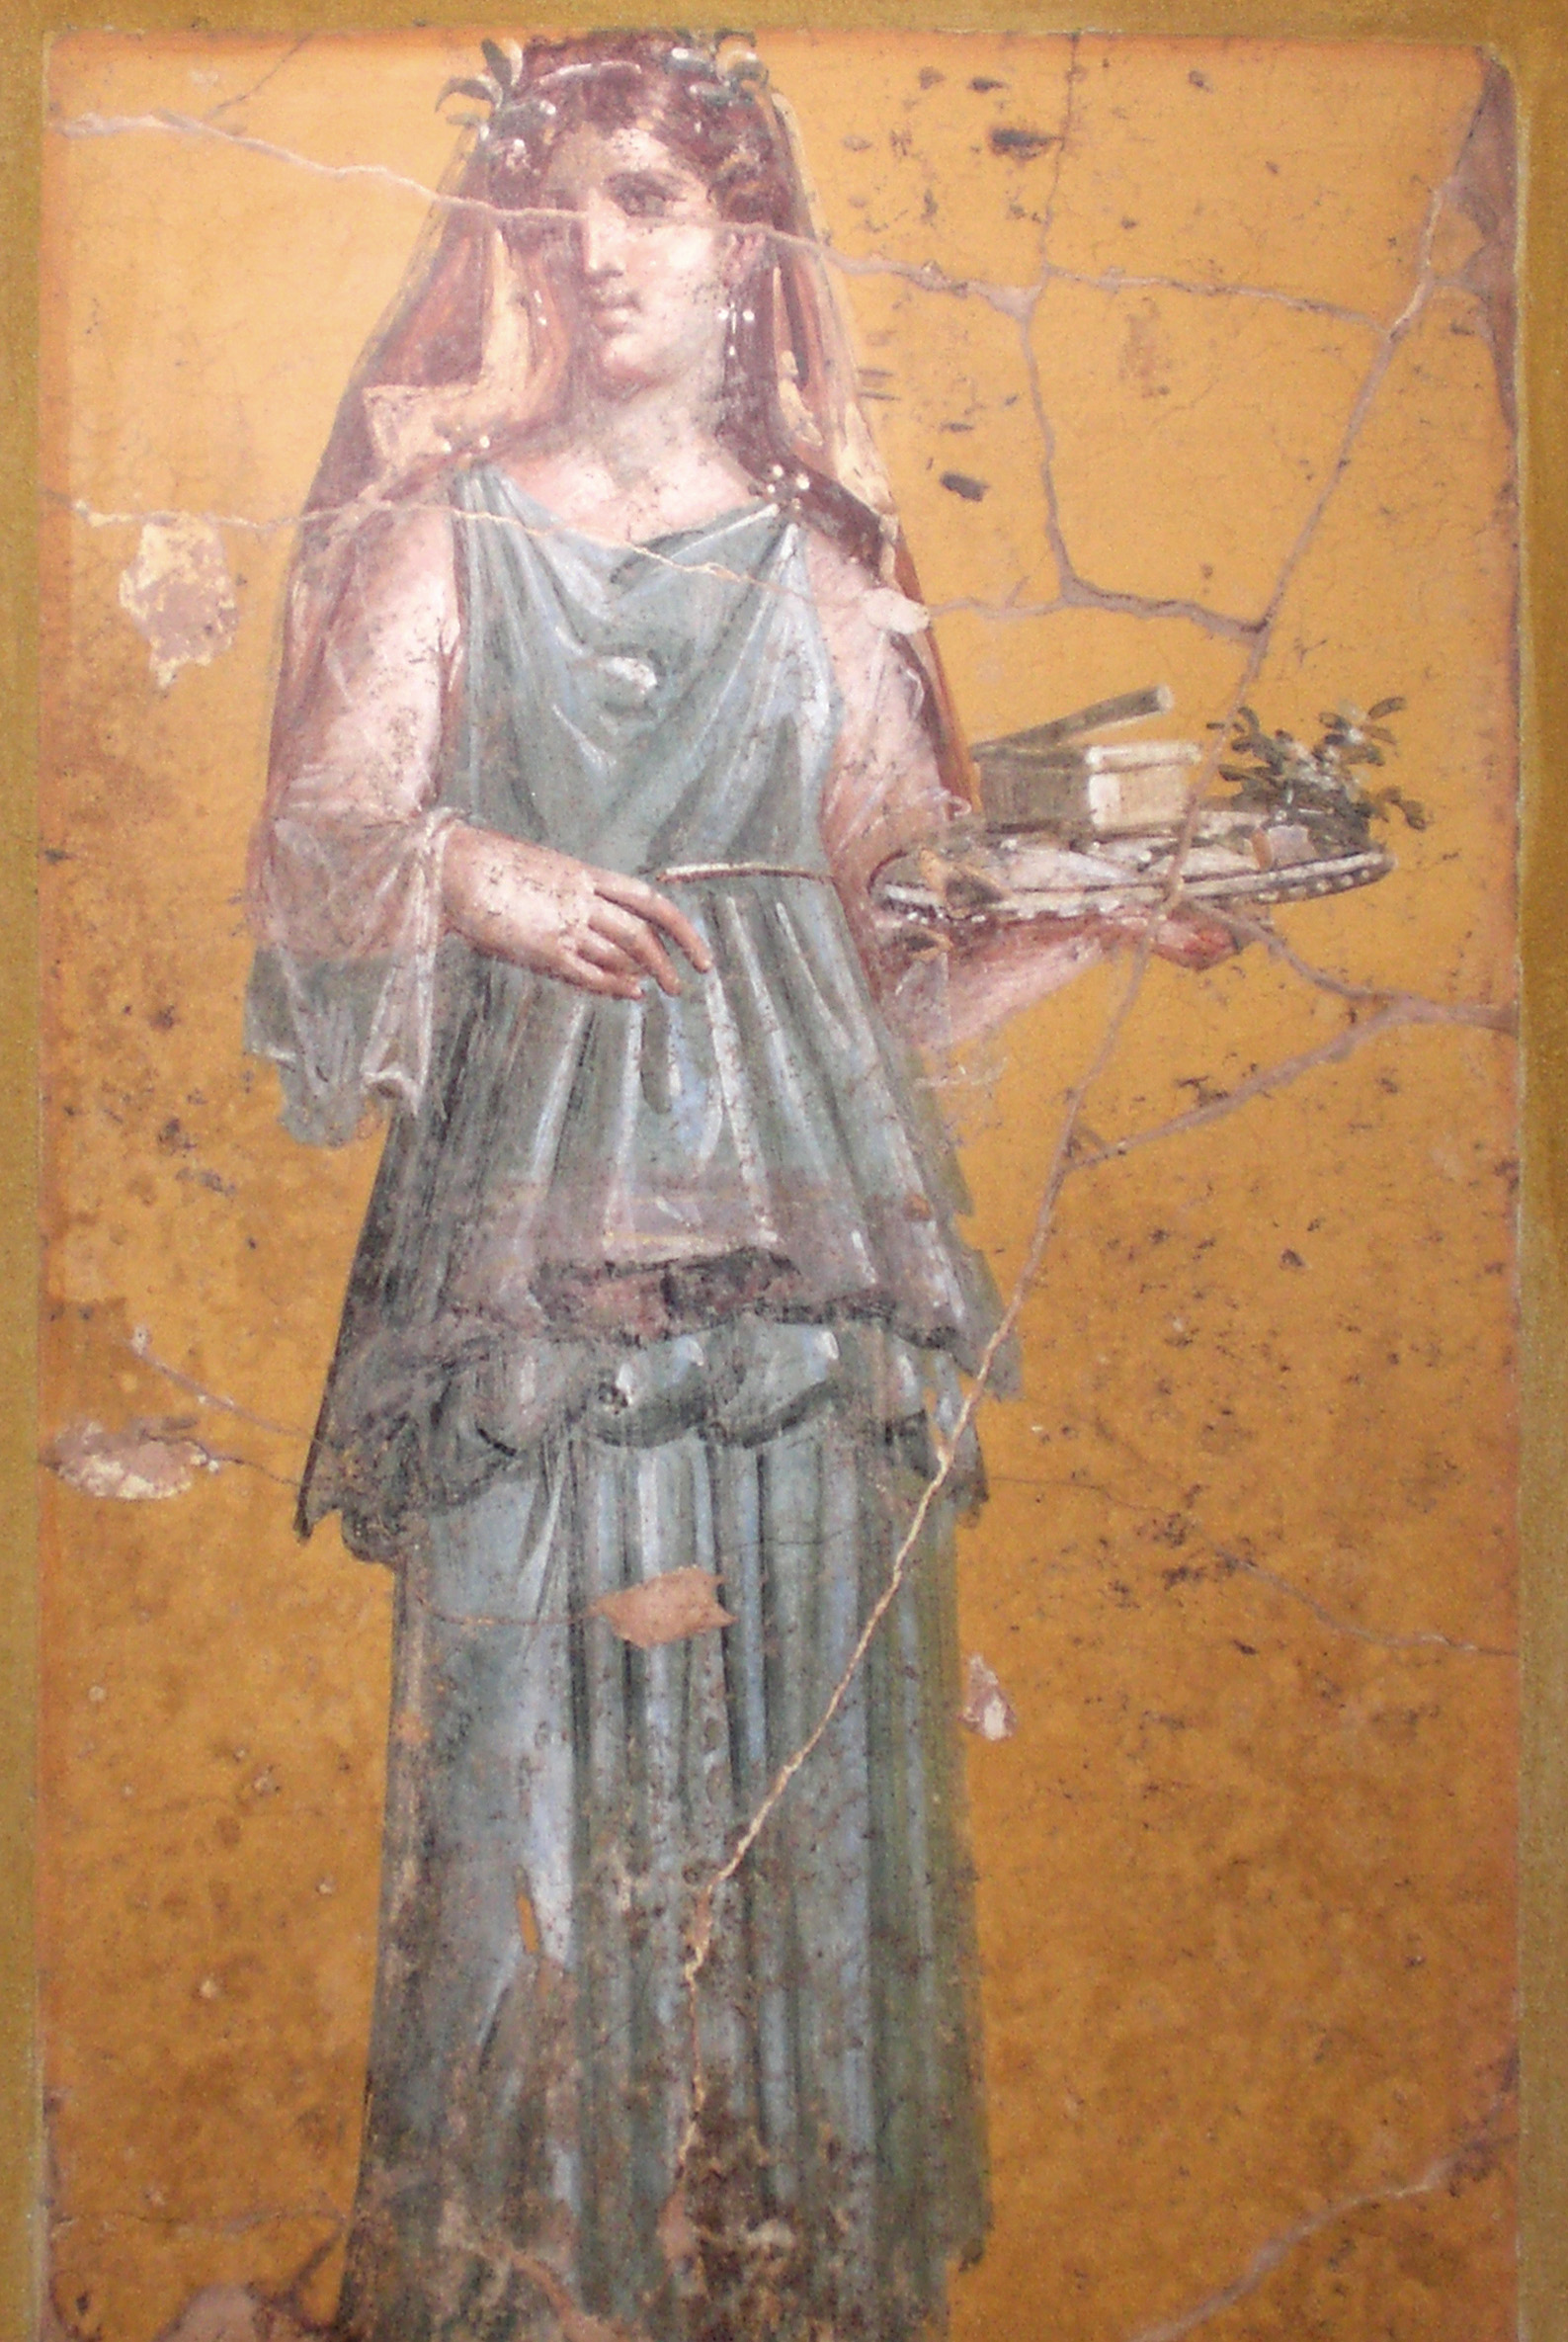 Fresco_of_woman_with_tray_in_Villa_San_Marco_retouched.jpg